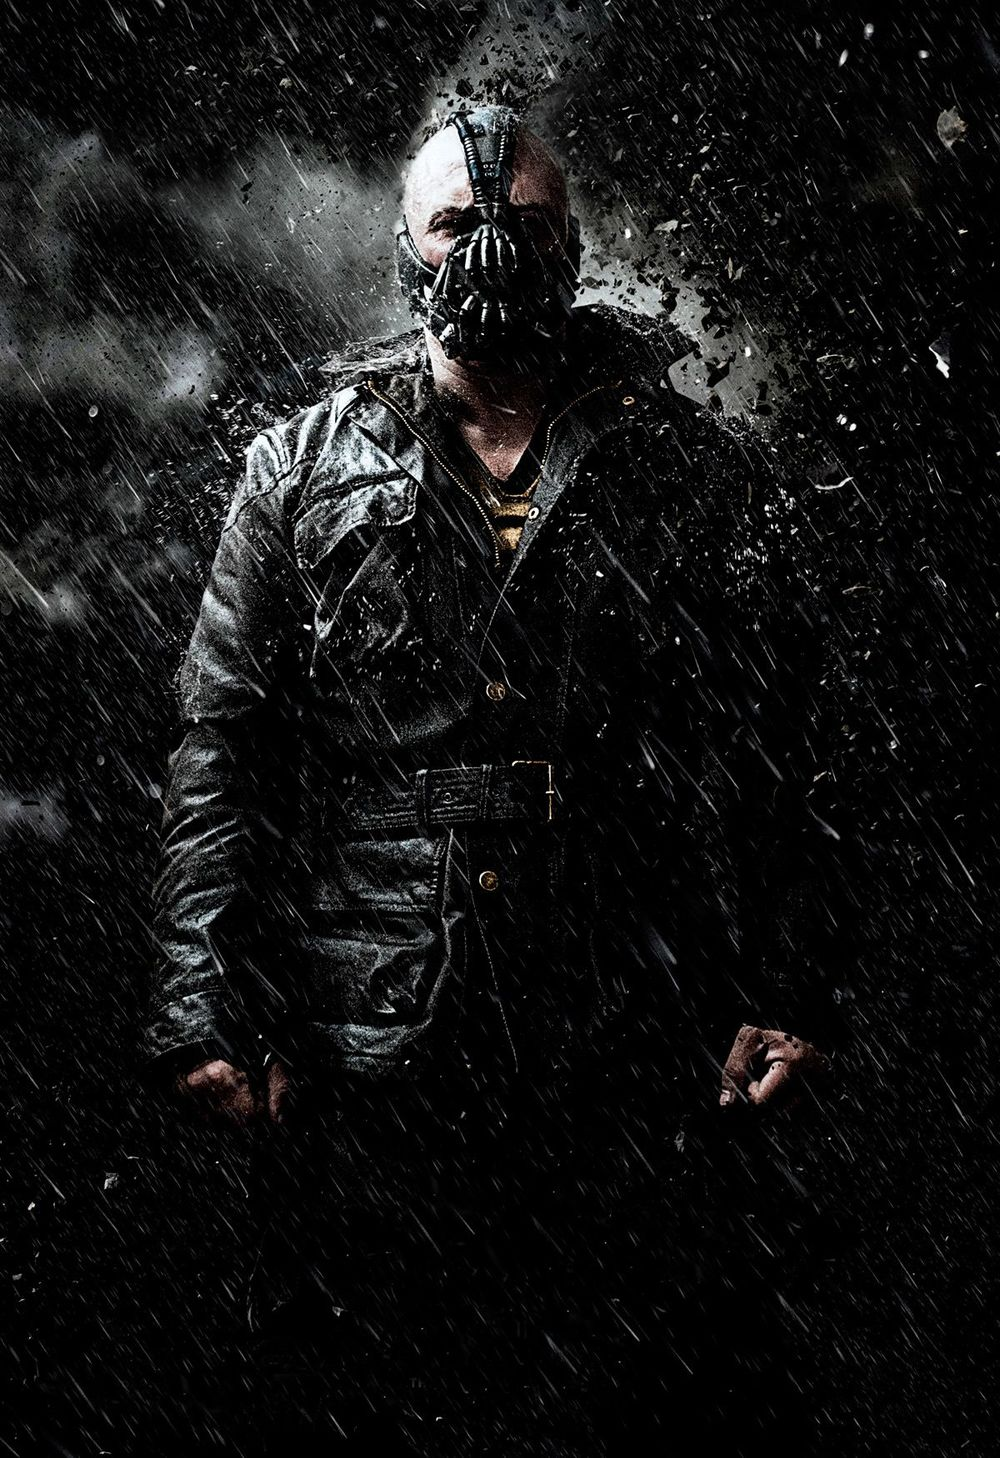 THE DARK KNIGHT RISES Textless Posters and Banners